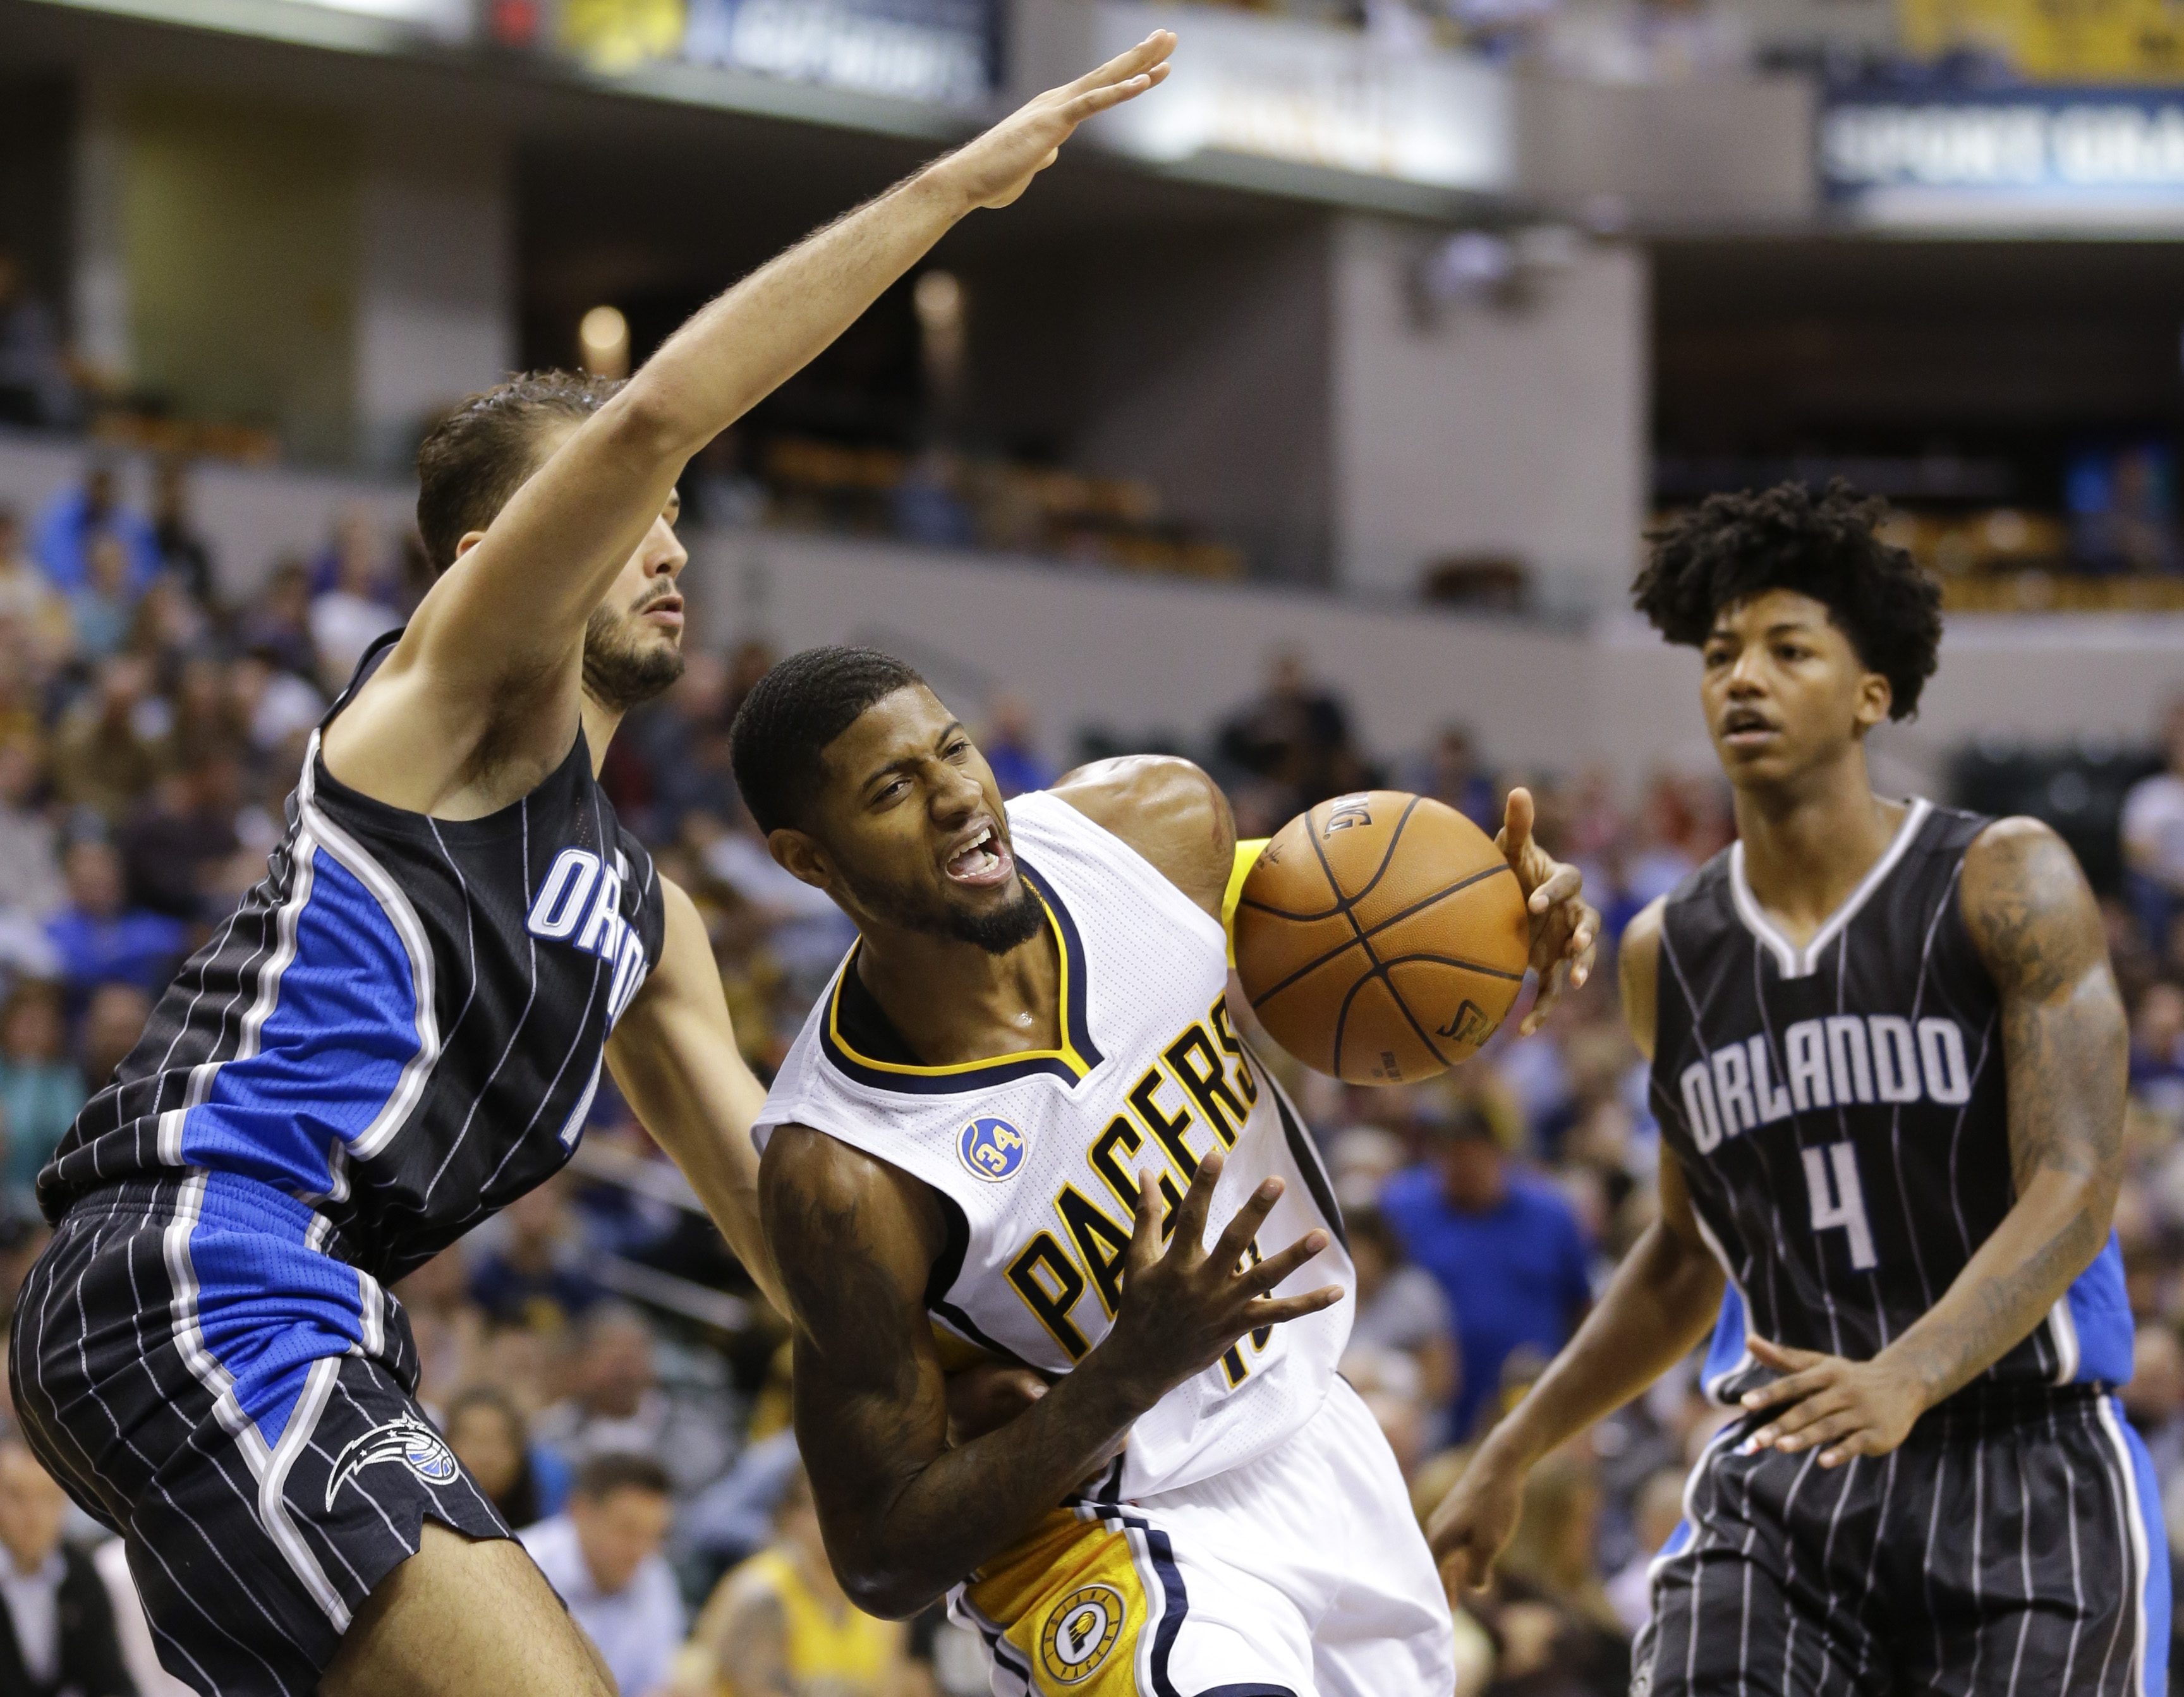 Indiana Pacers forward Paul George, center, is fouled as he cuts between Orlando Magic forward Evan Fournier, left, and guard Elfrid Payton (4) during the second half of an NBA basketball game in Indianapolis, Monday, Nov. 9, 2015. The Pacers won 97-84. (